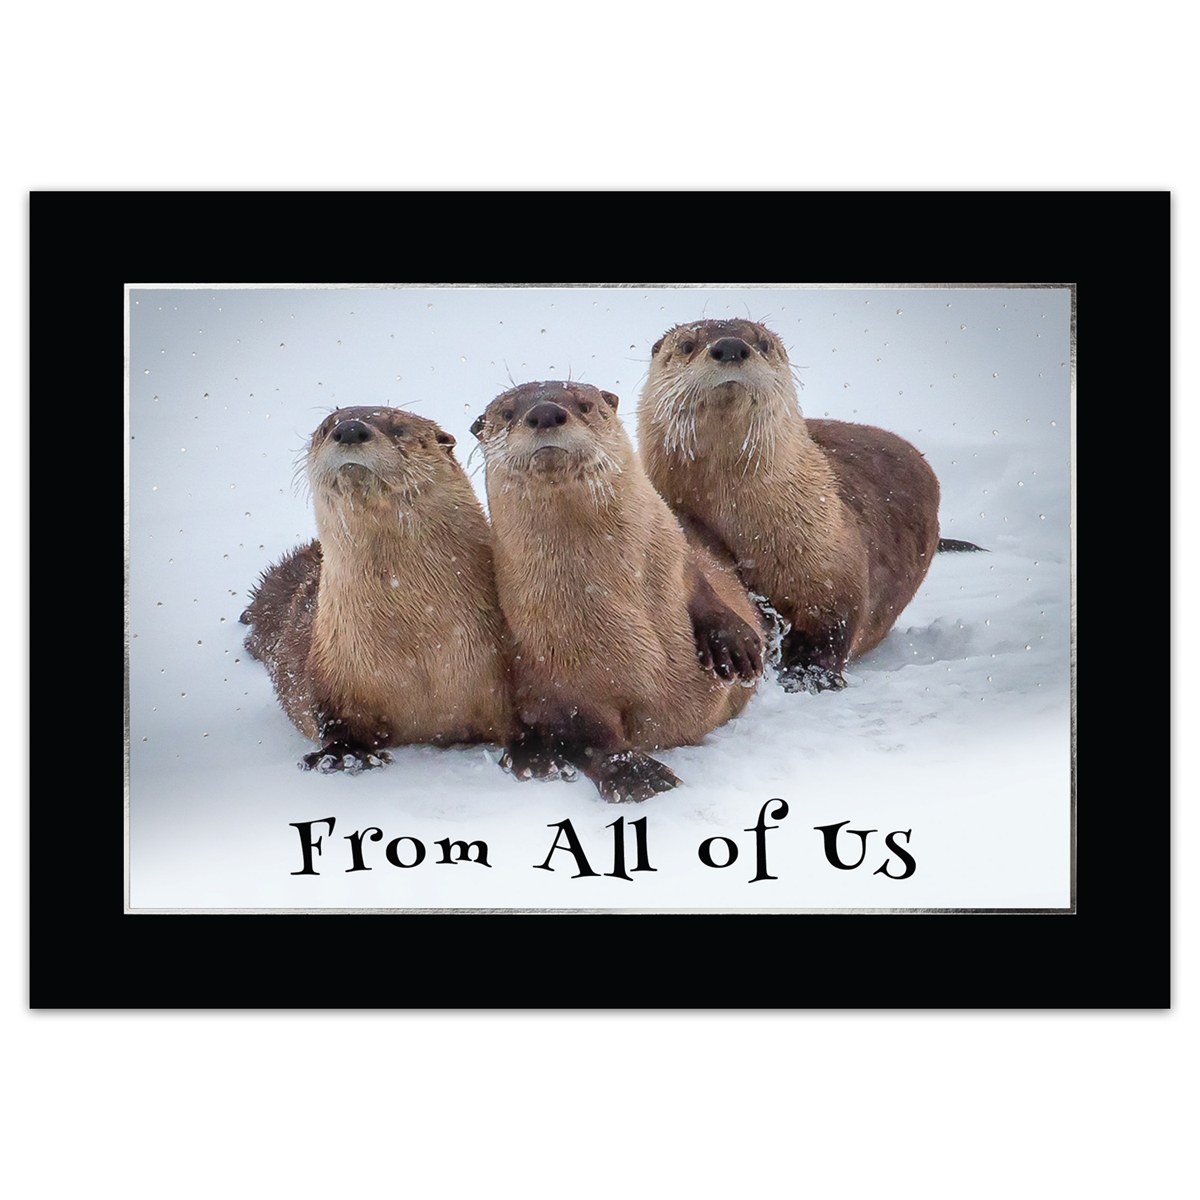 River Otters From All of Us Card